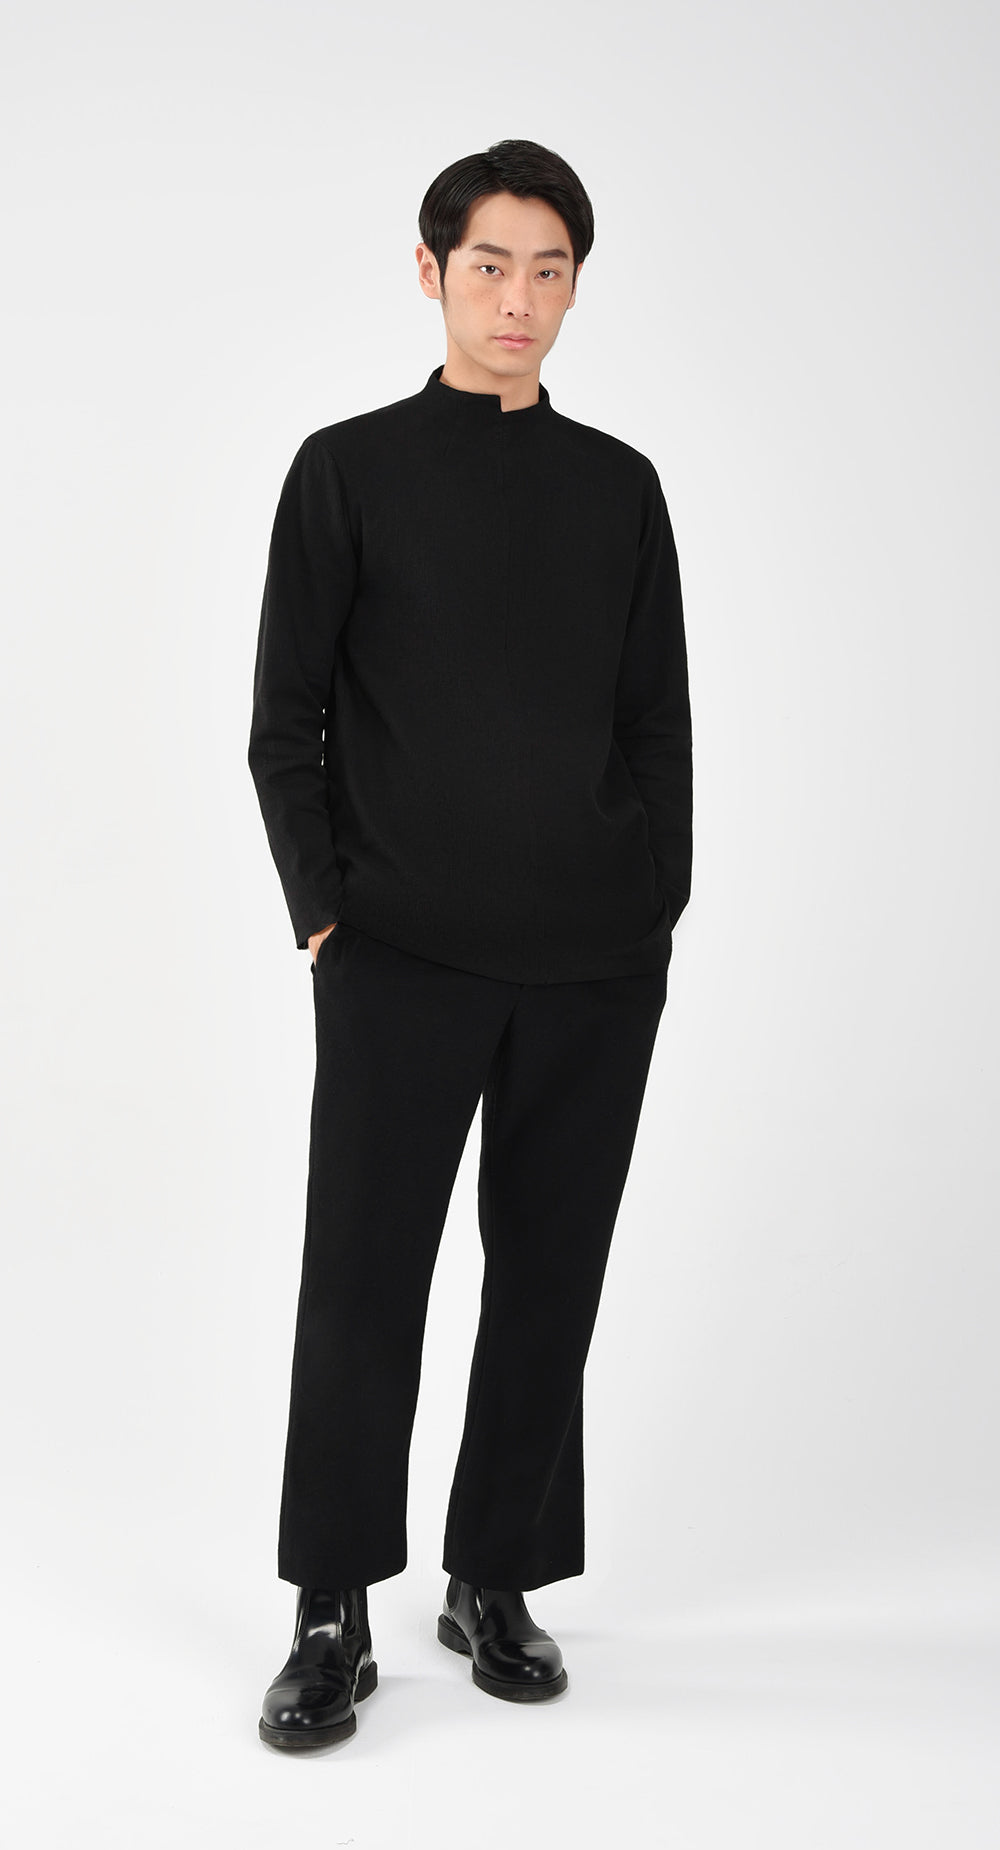 FW Unbalanced Turtle Neck Shirt BK